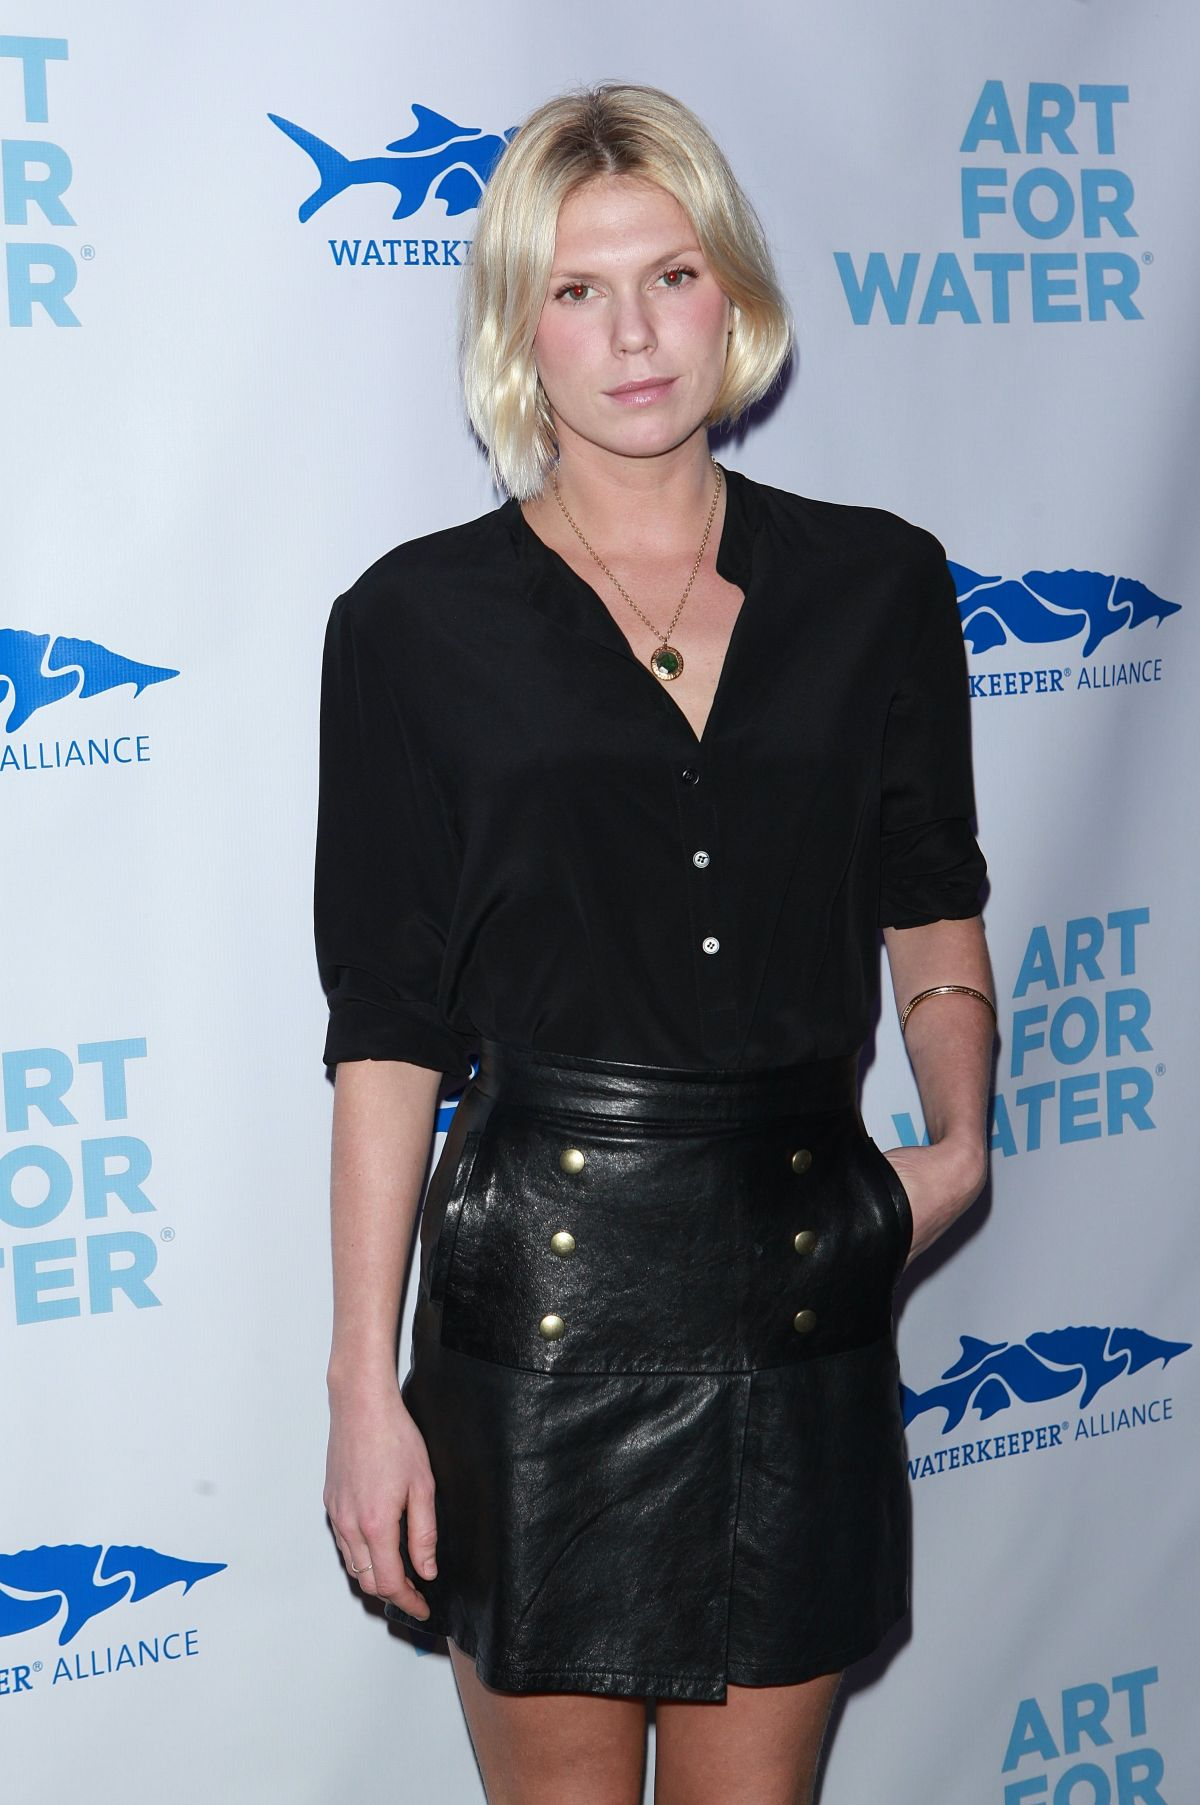 ALEXANDRA RICHARDS at Art for Water Benefiring Waterkeeper Alliance Charity in New York 02/06/2017